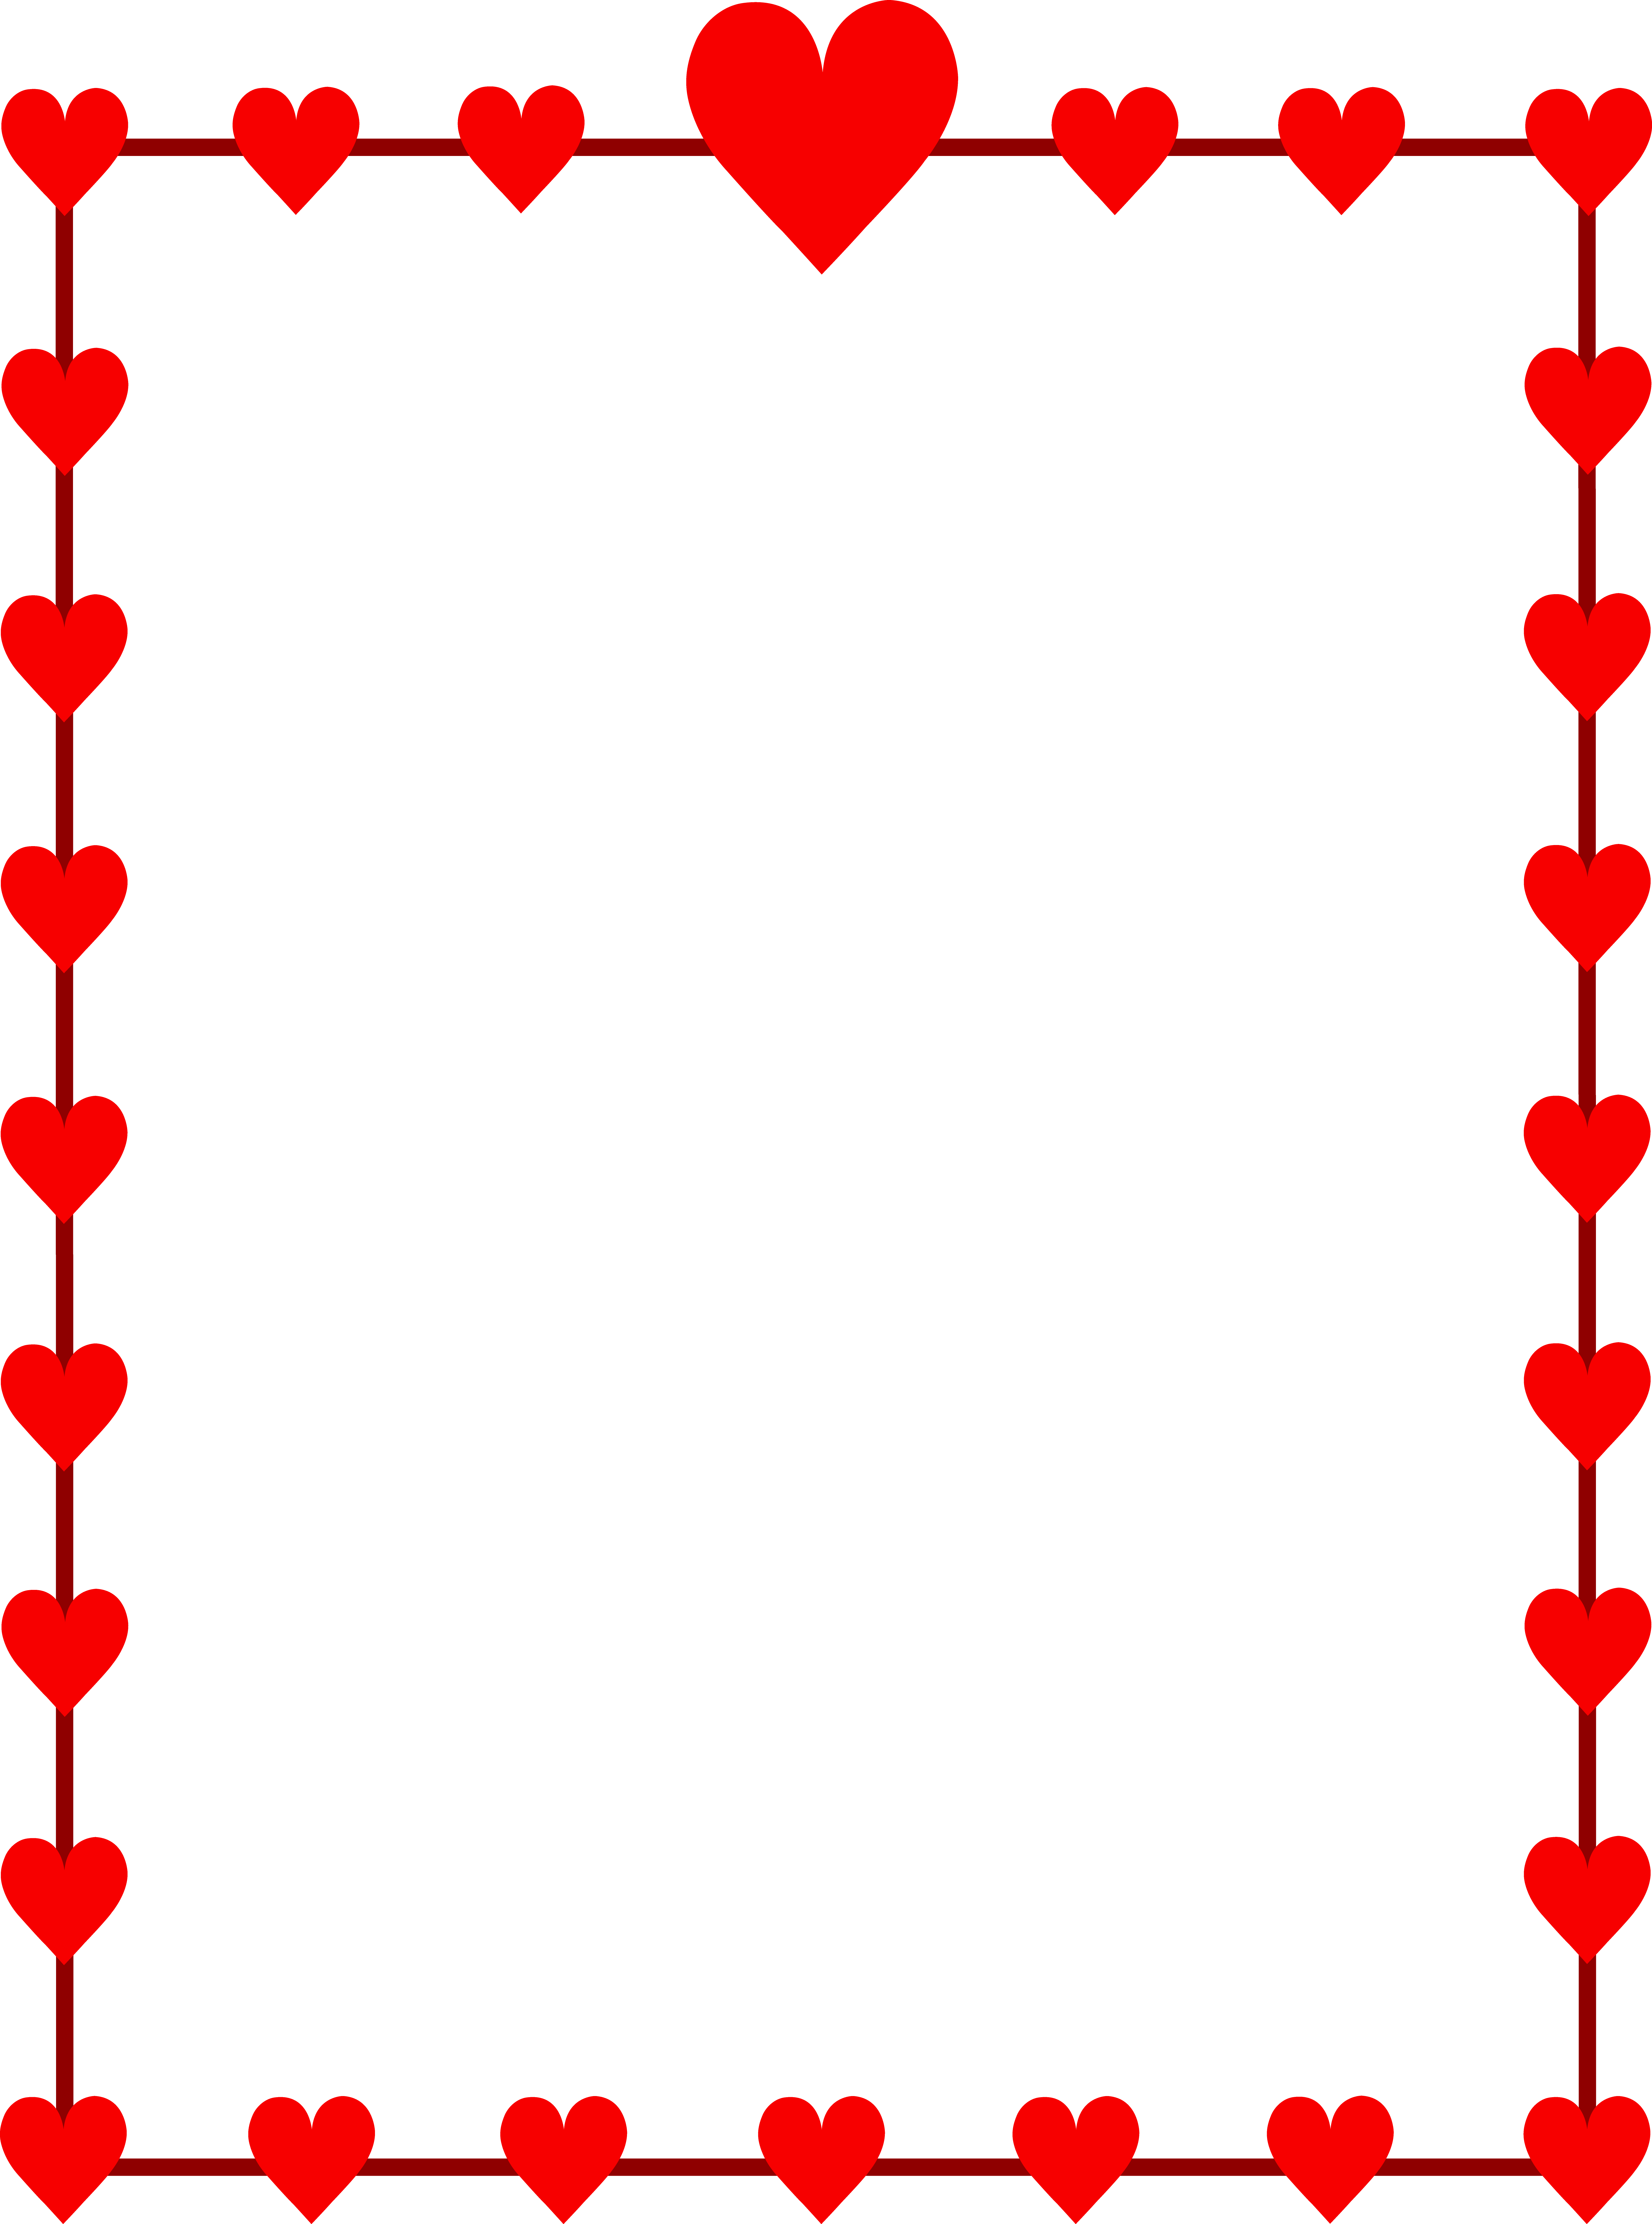 Free heart for word. Physical clipart border design banner free